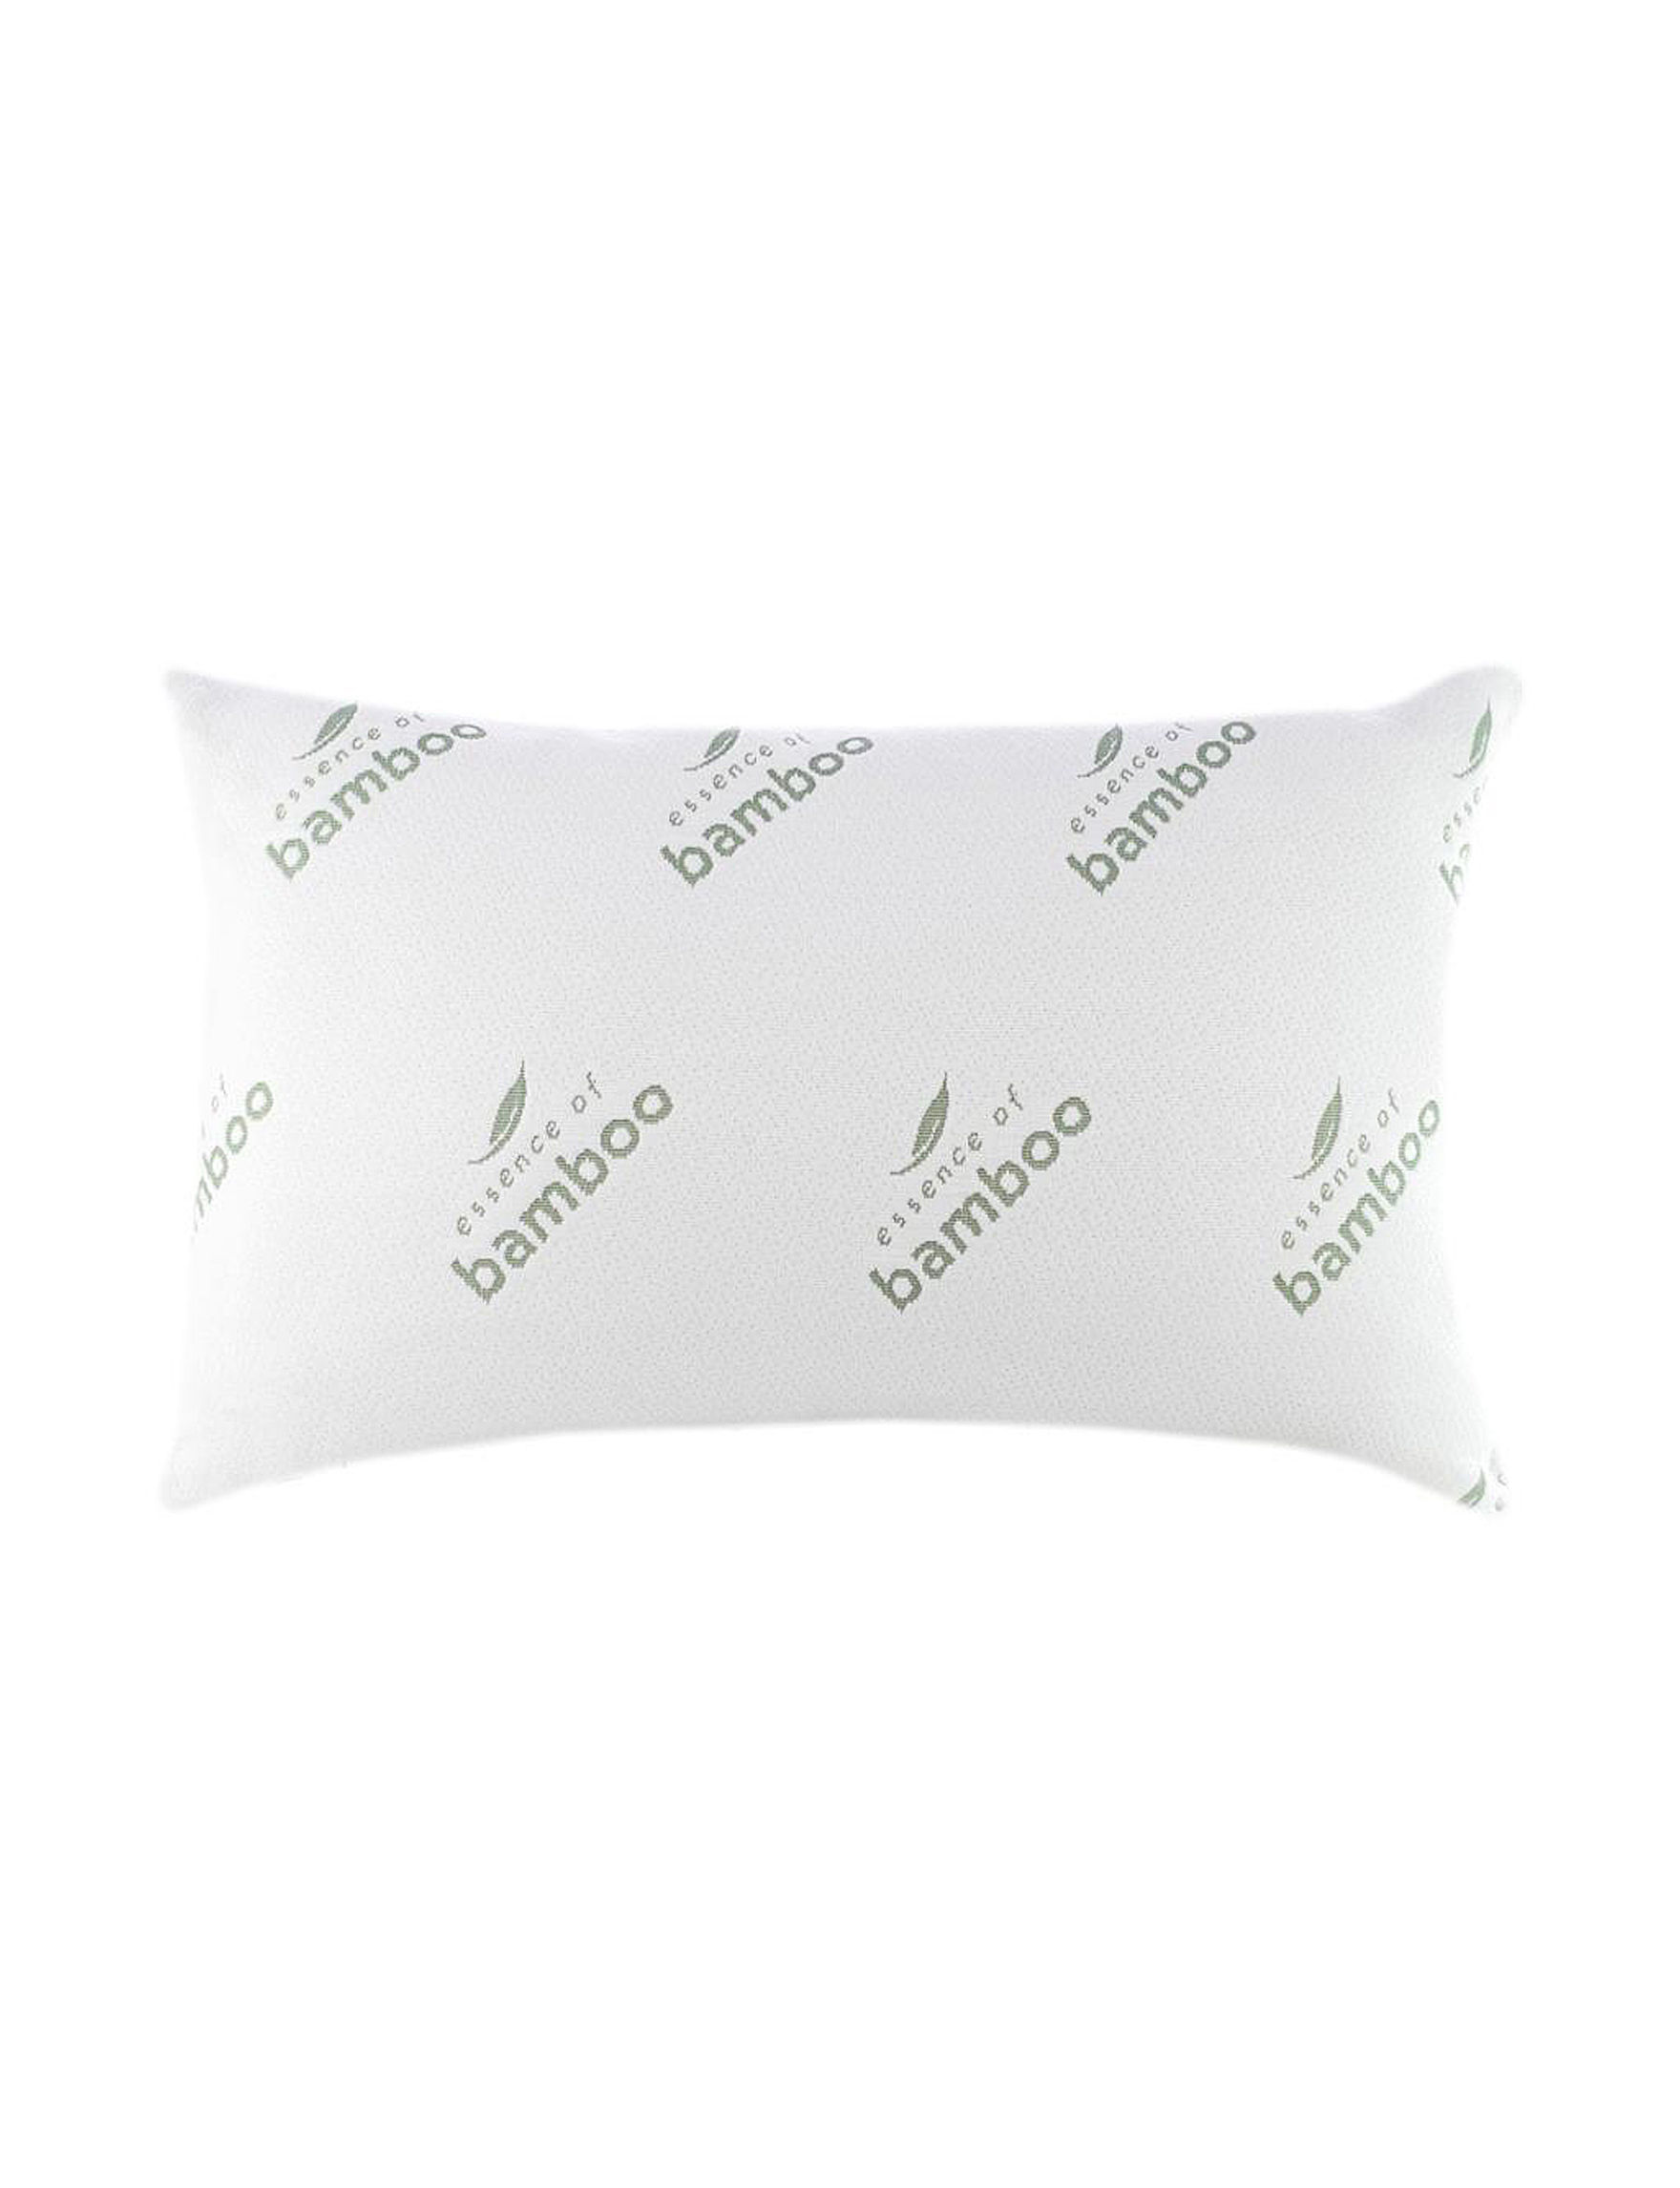 Essence of Bamb White Bed Pillows